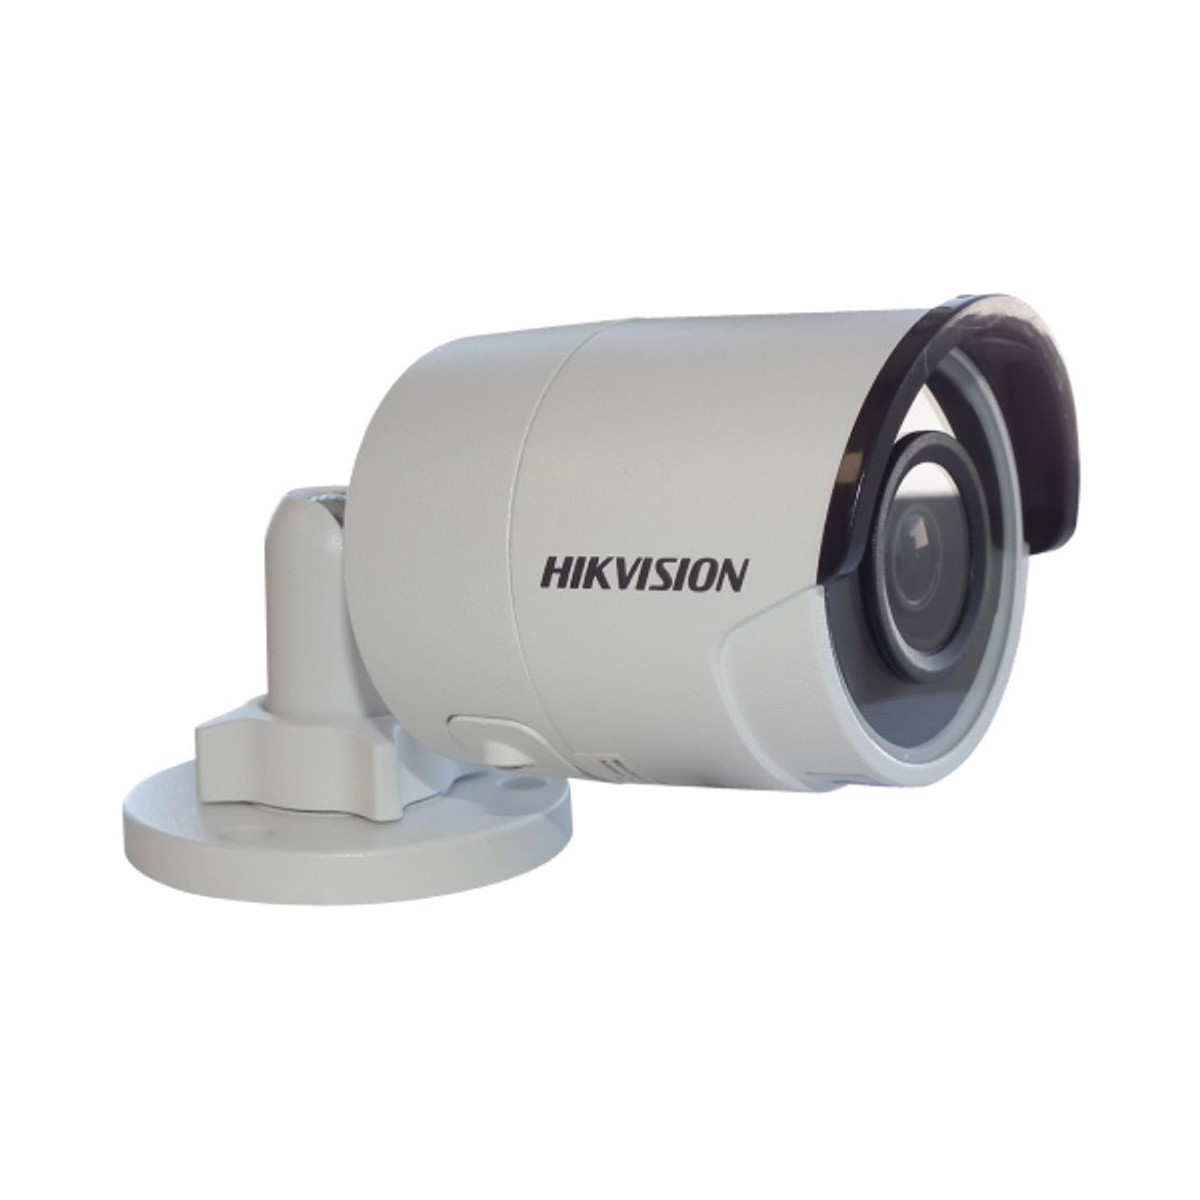 Cámara Hikvision IP DS-2CD2043G0-I Bullet 4MP